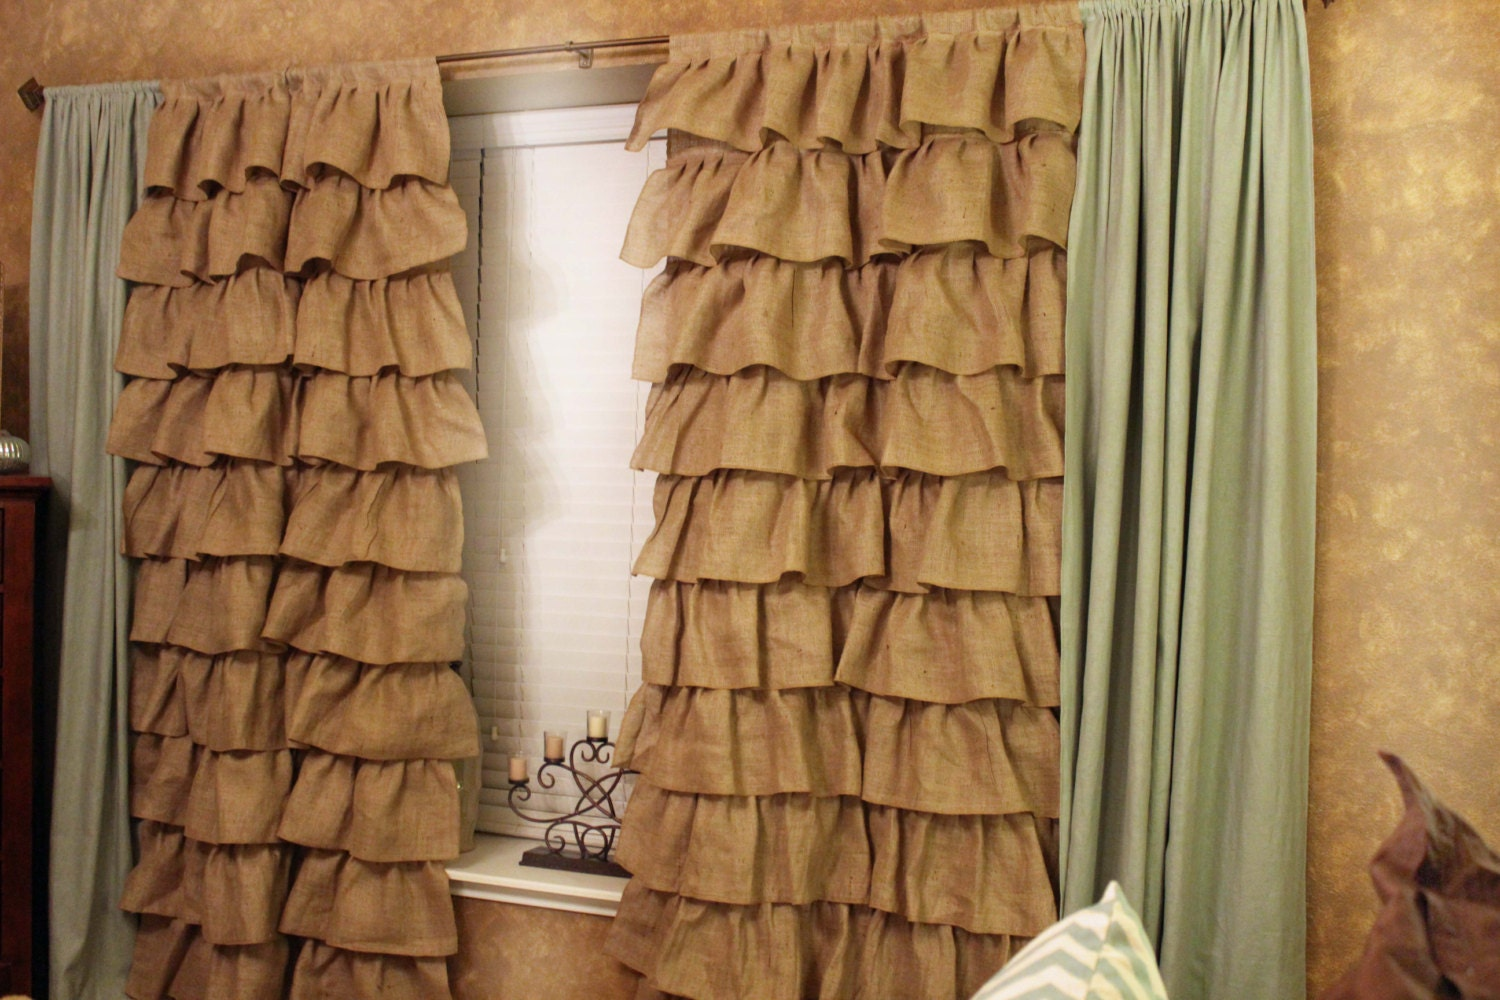 Burlap Curtains Full Panel Ruffles